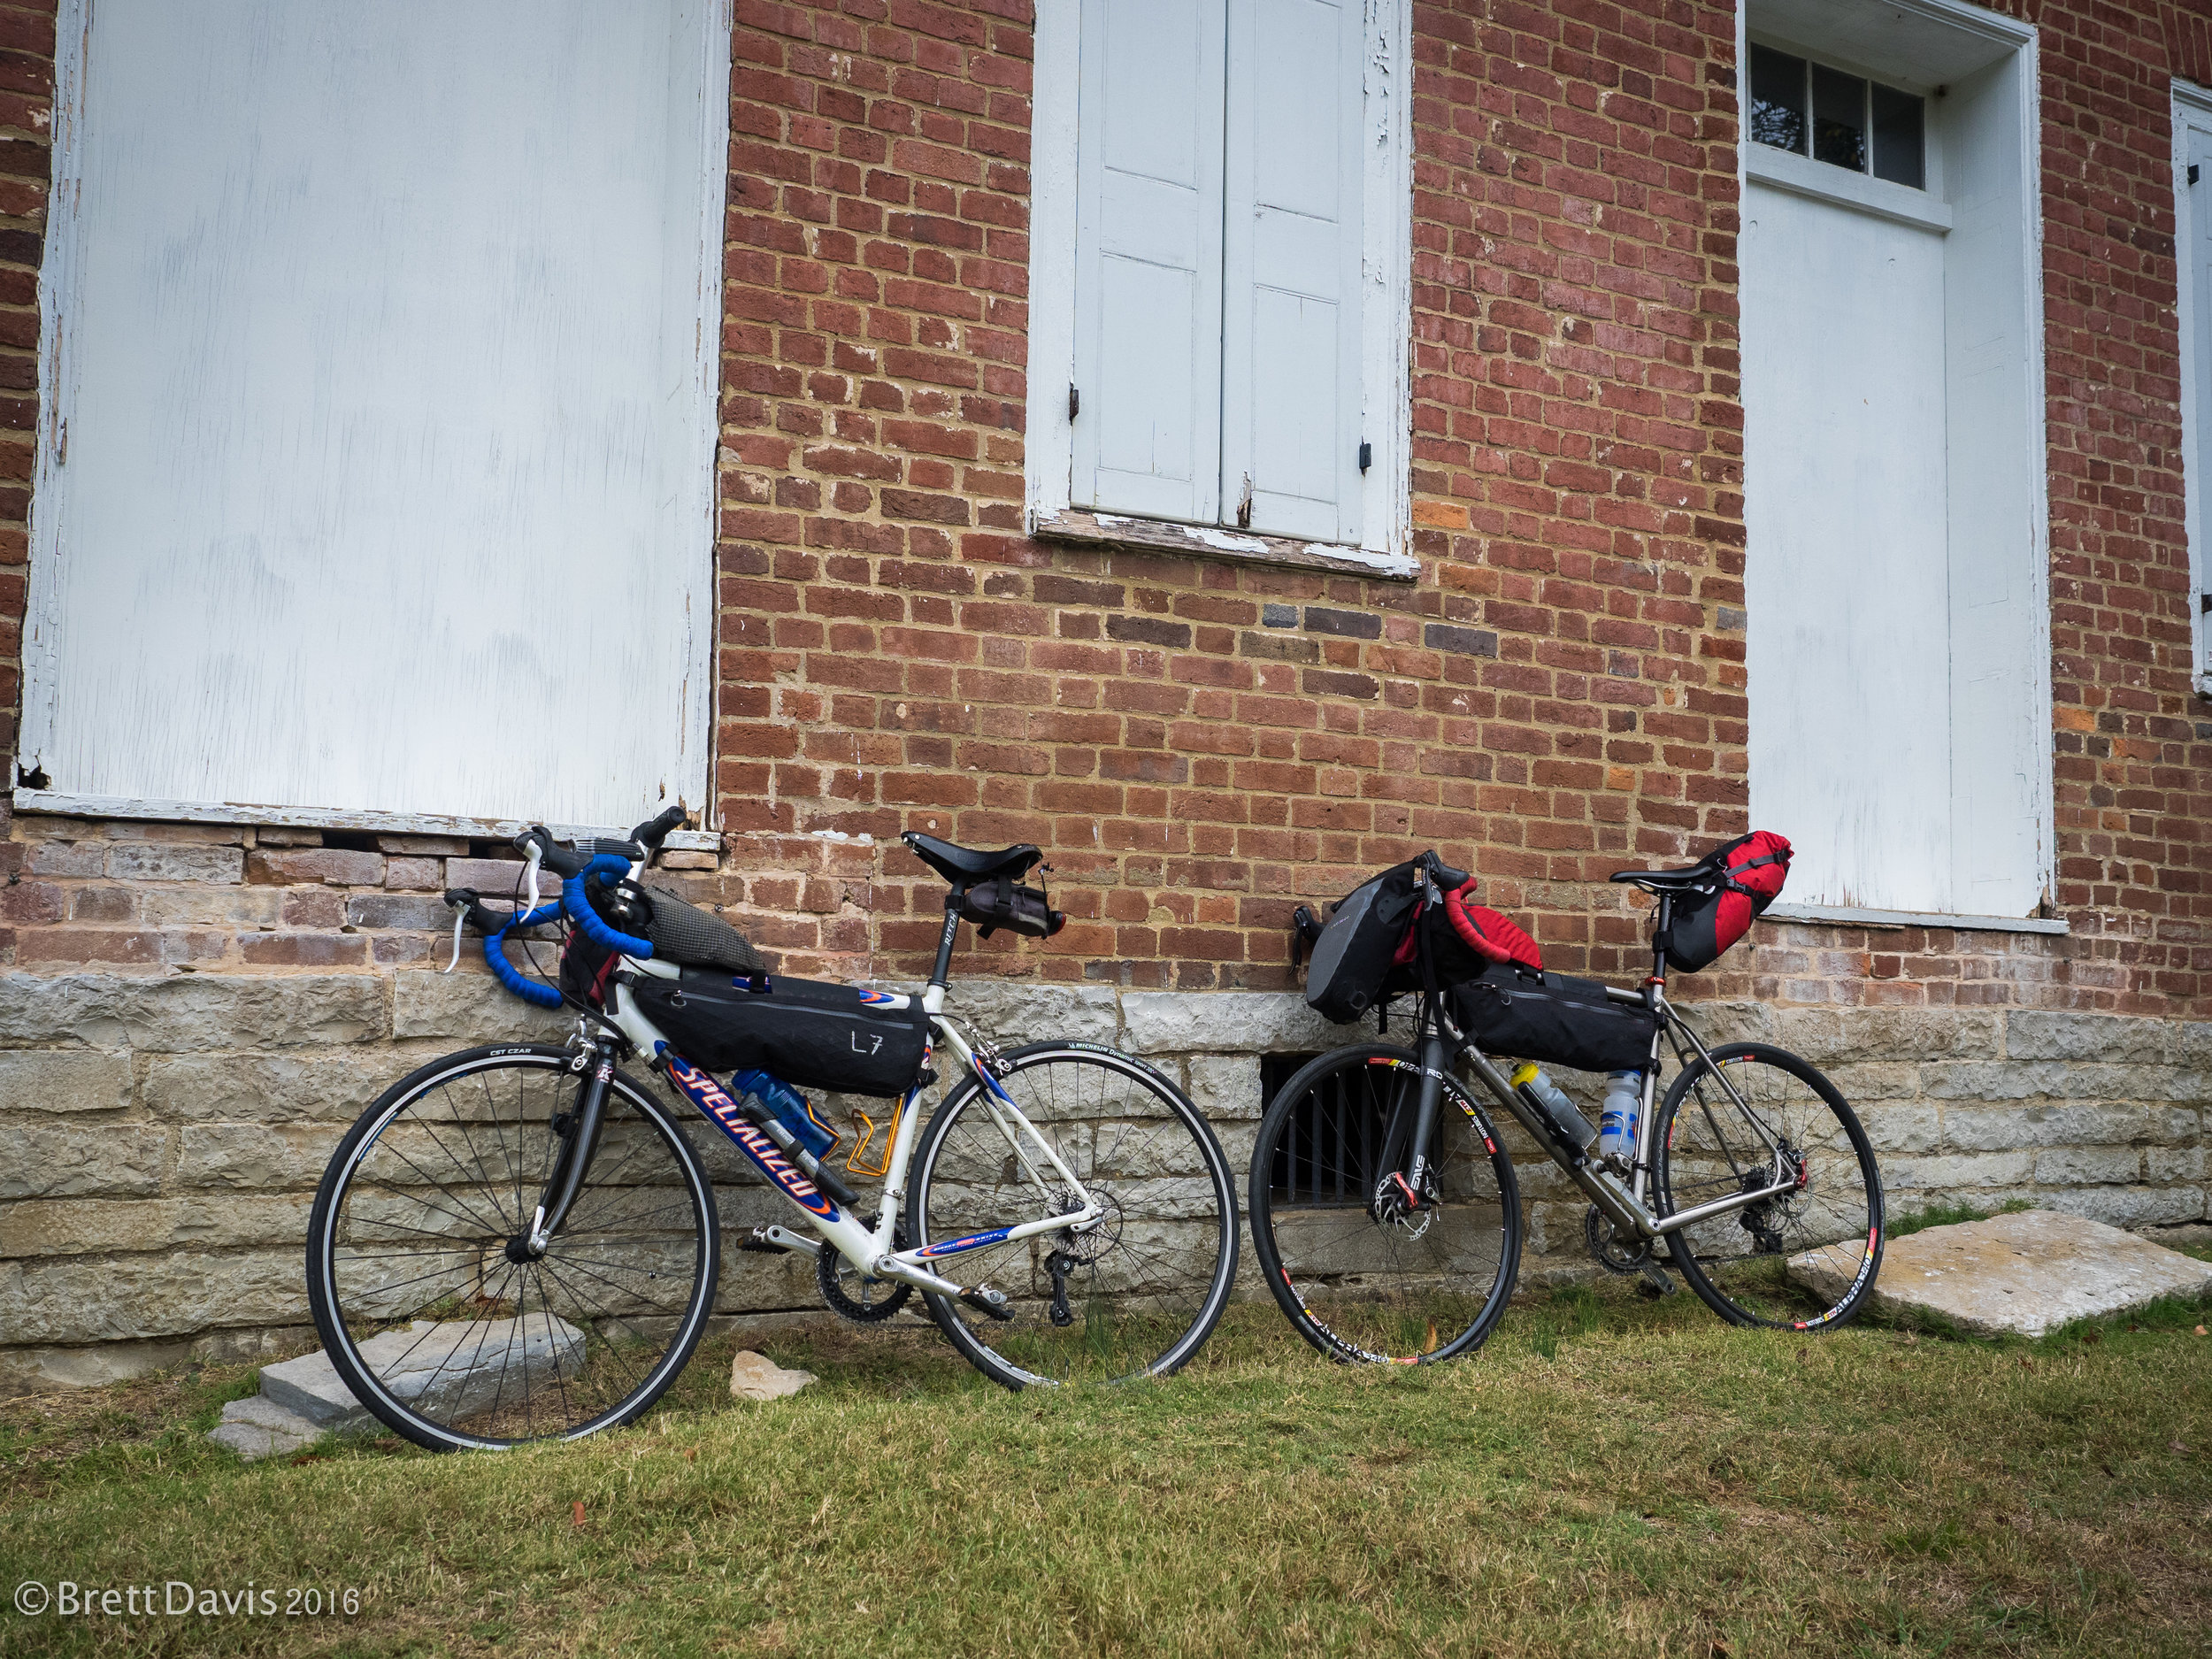 Our trusty steeds getting some rest against one of the old brick walls of the Gordon House.